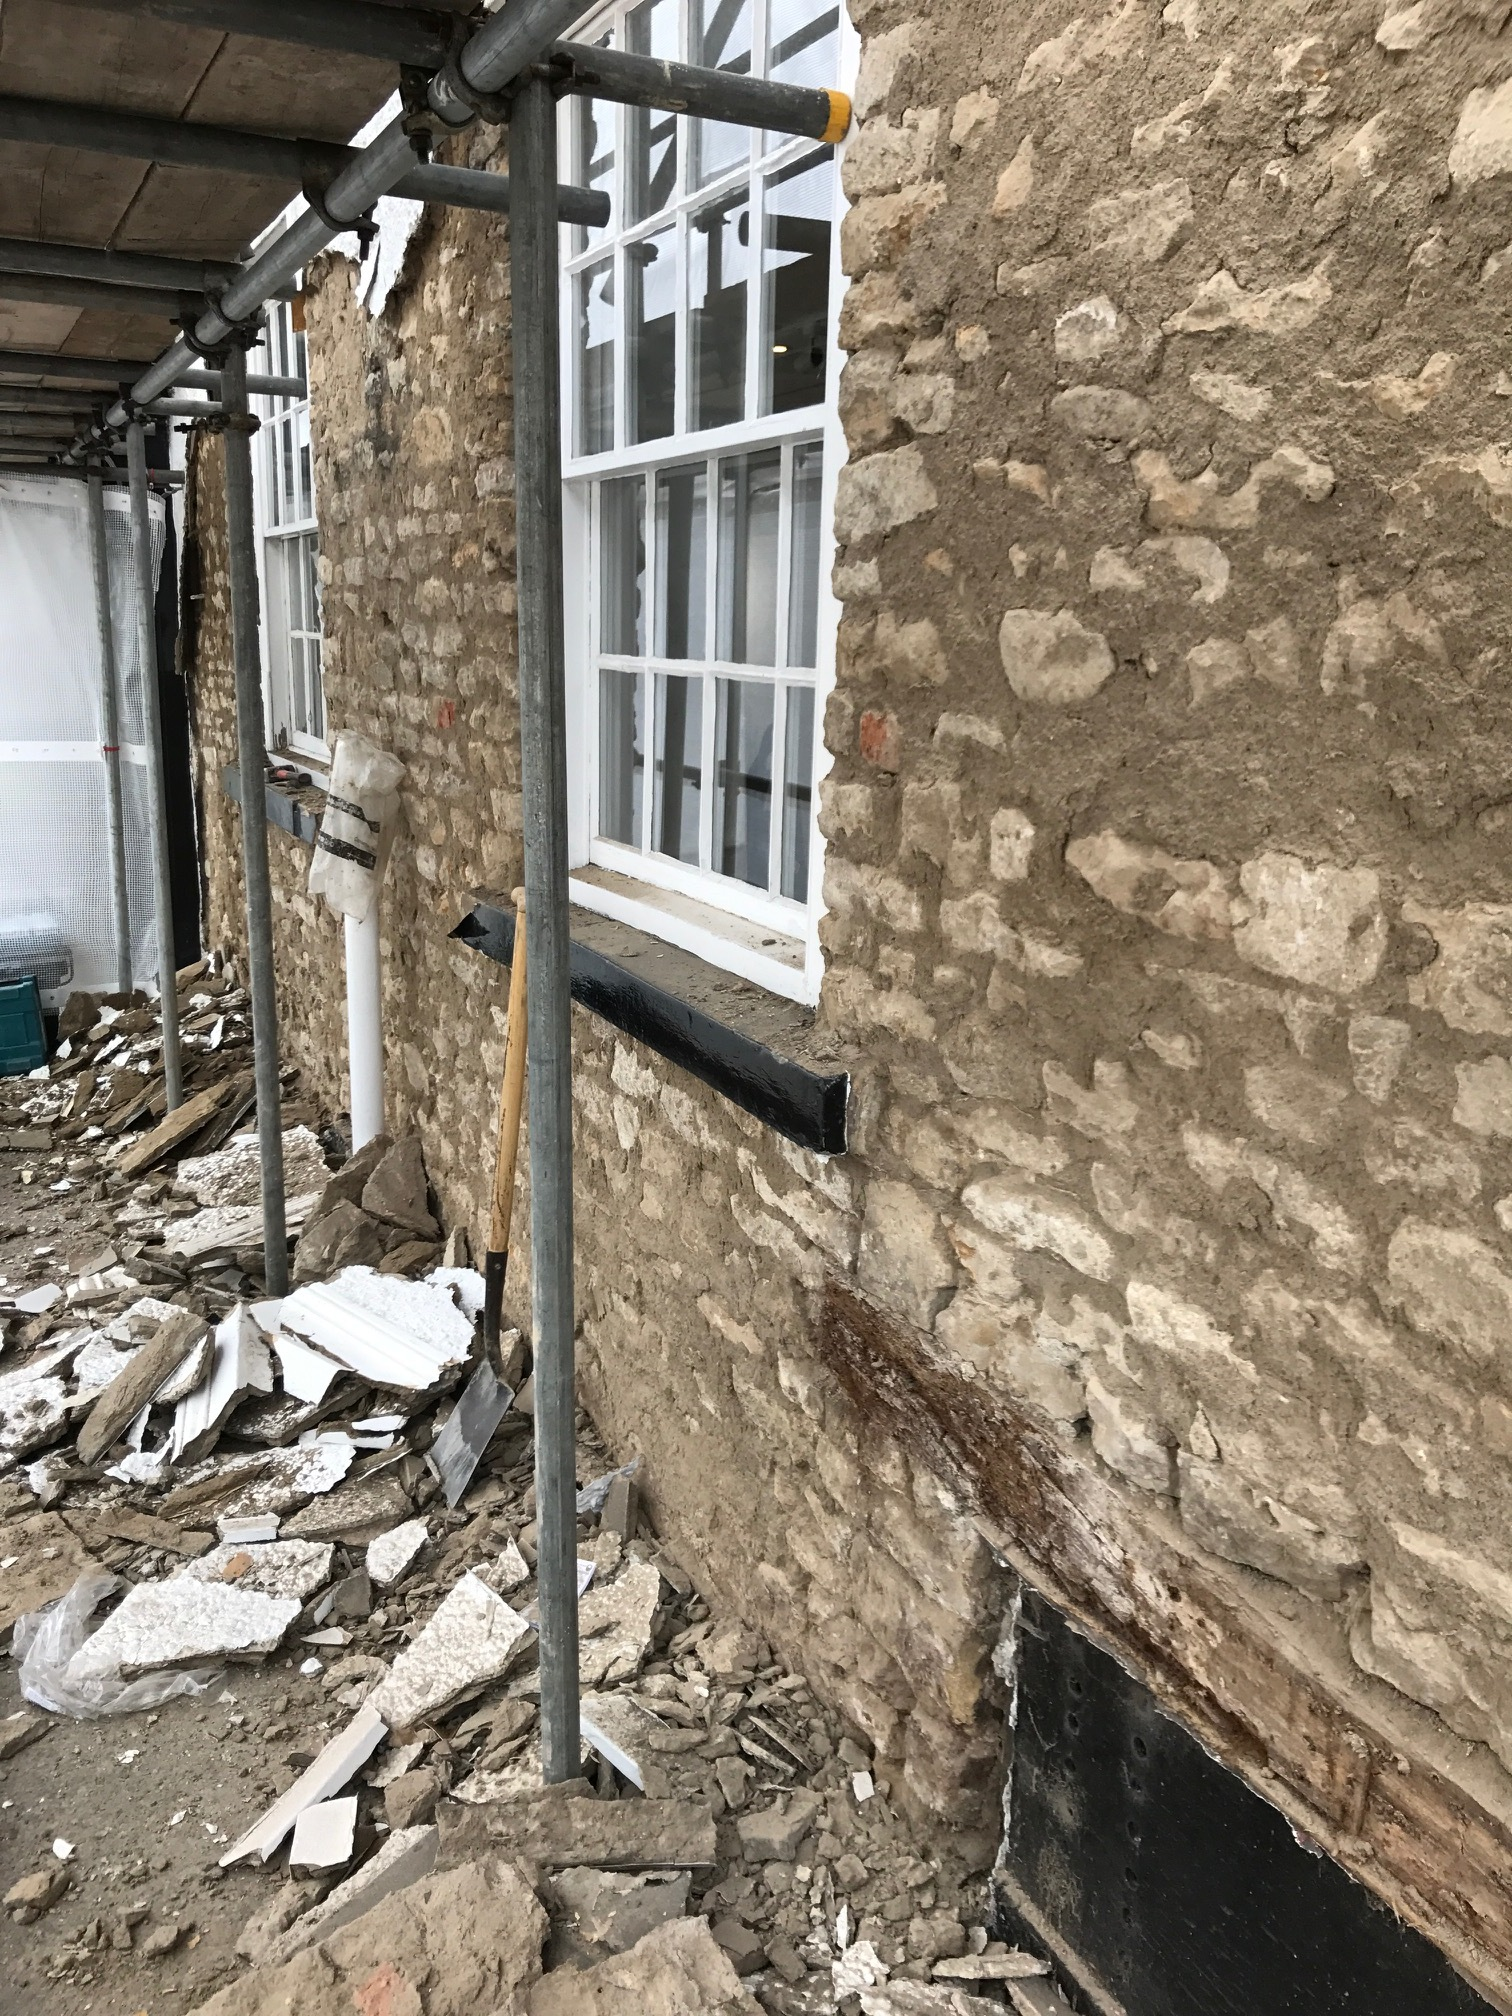 Back to Stone - The render is coming off to reveal some stunning limestone and sandstone for the first time in over a hundred years. This creates a dilemma, do we consider apply for Listed Building Consent to keep the stone on show?